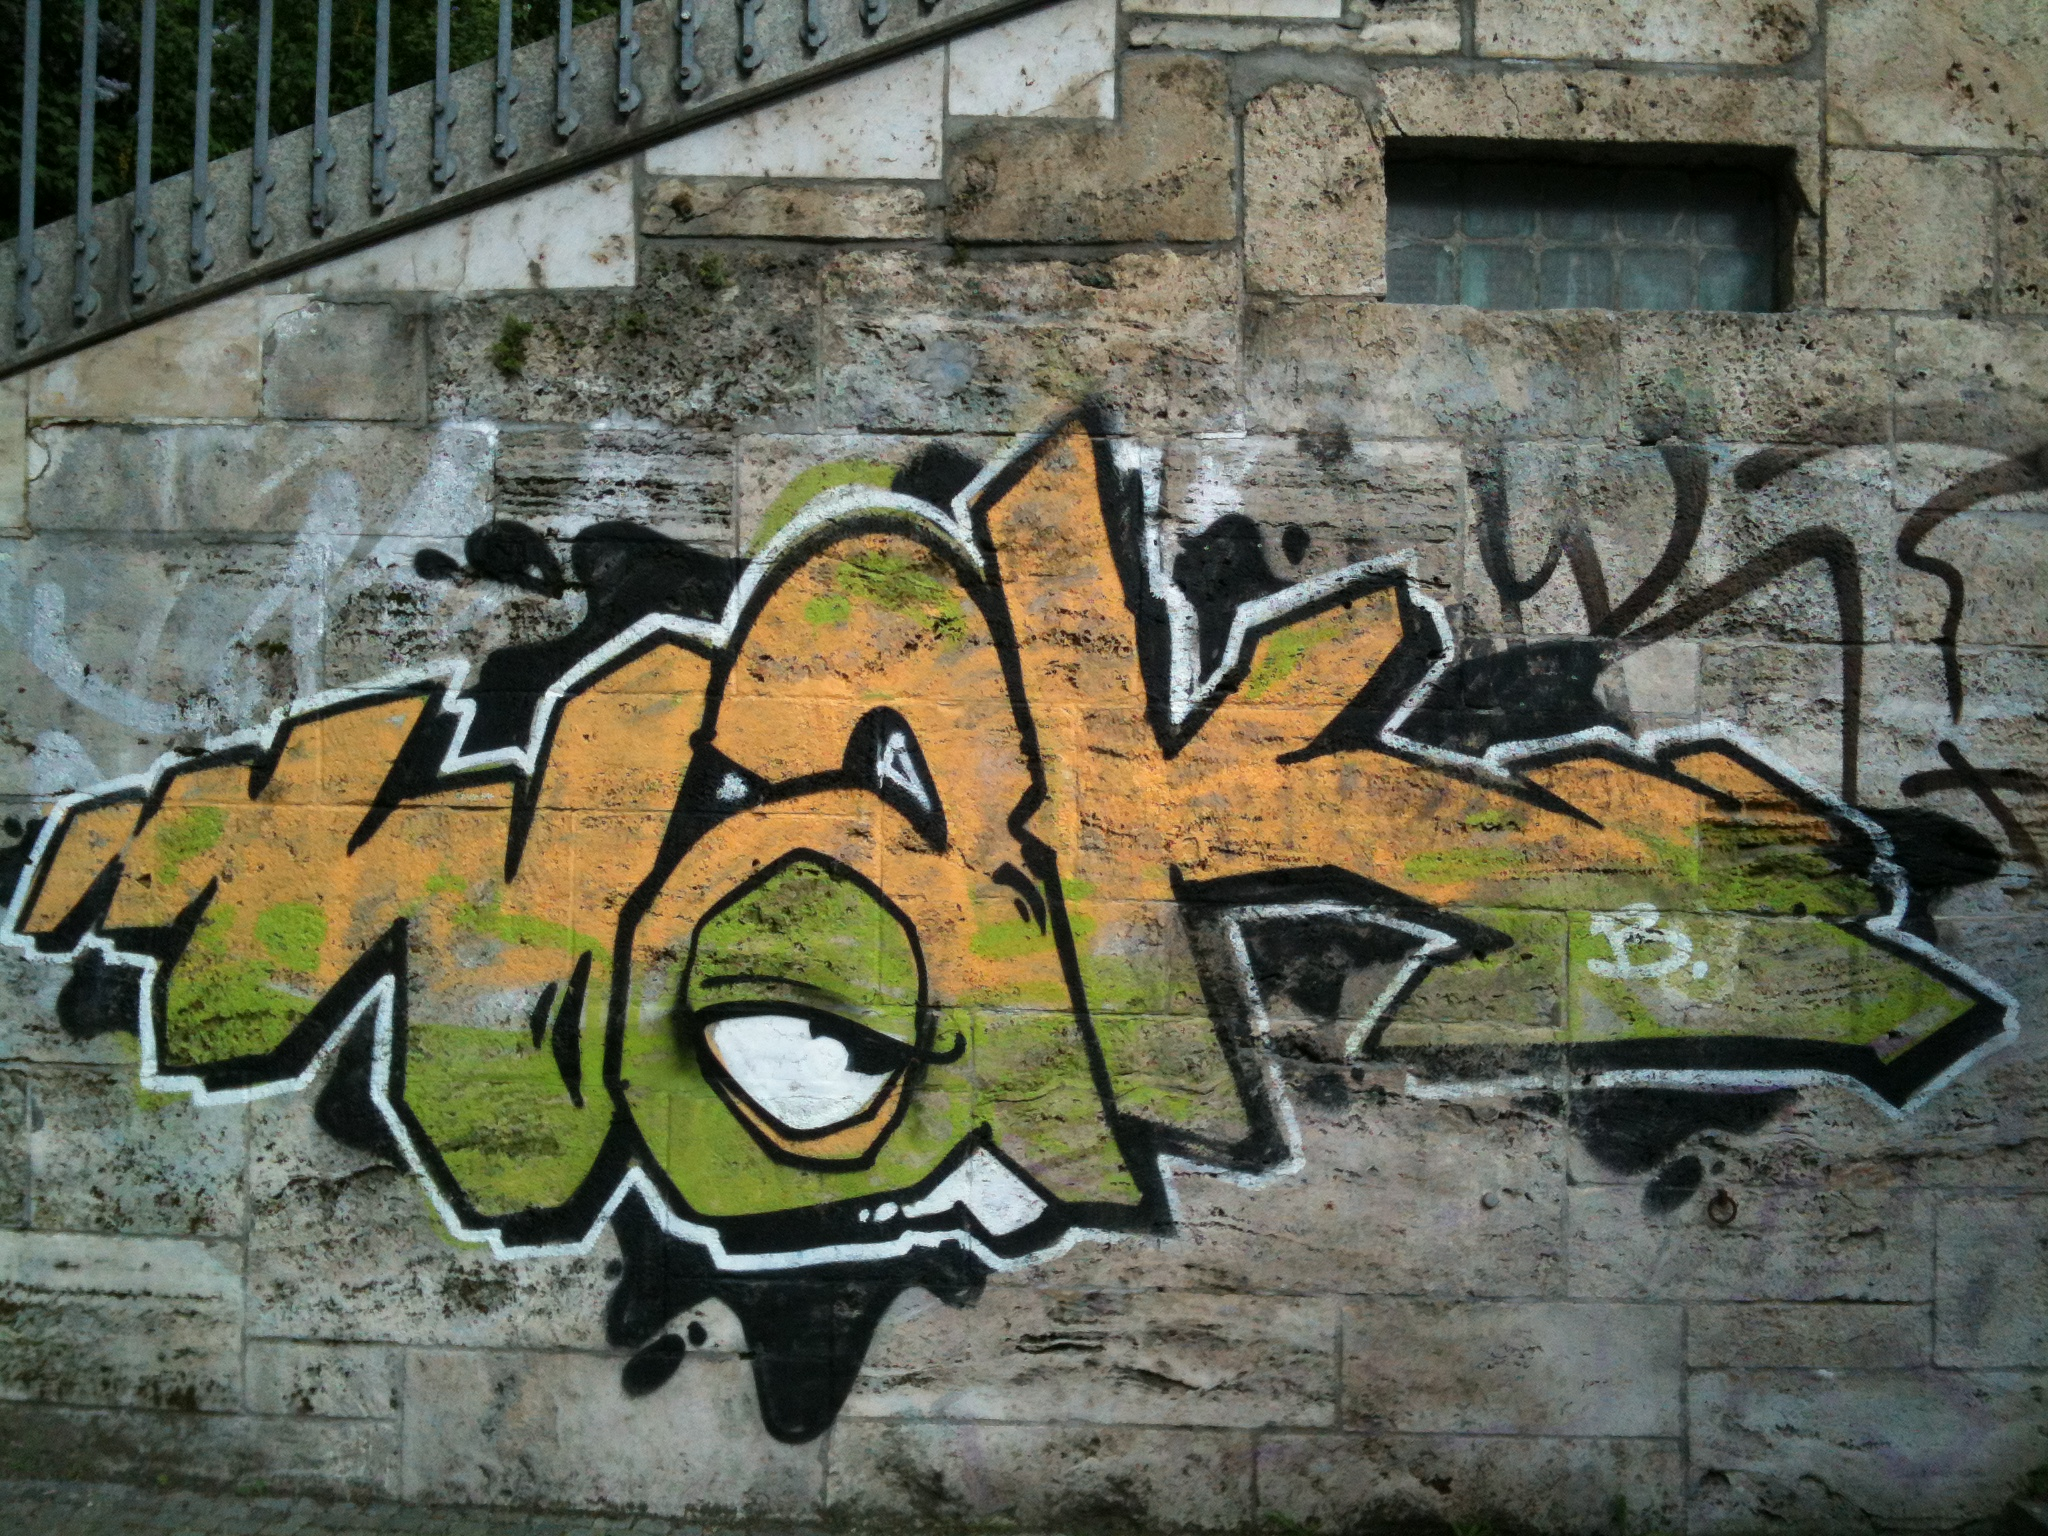 ART AVENUE Report: WAK – Munich all city Graffiti Kings